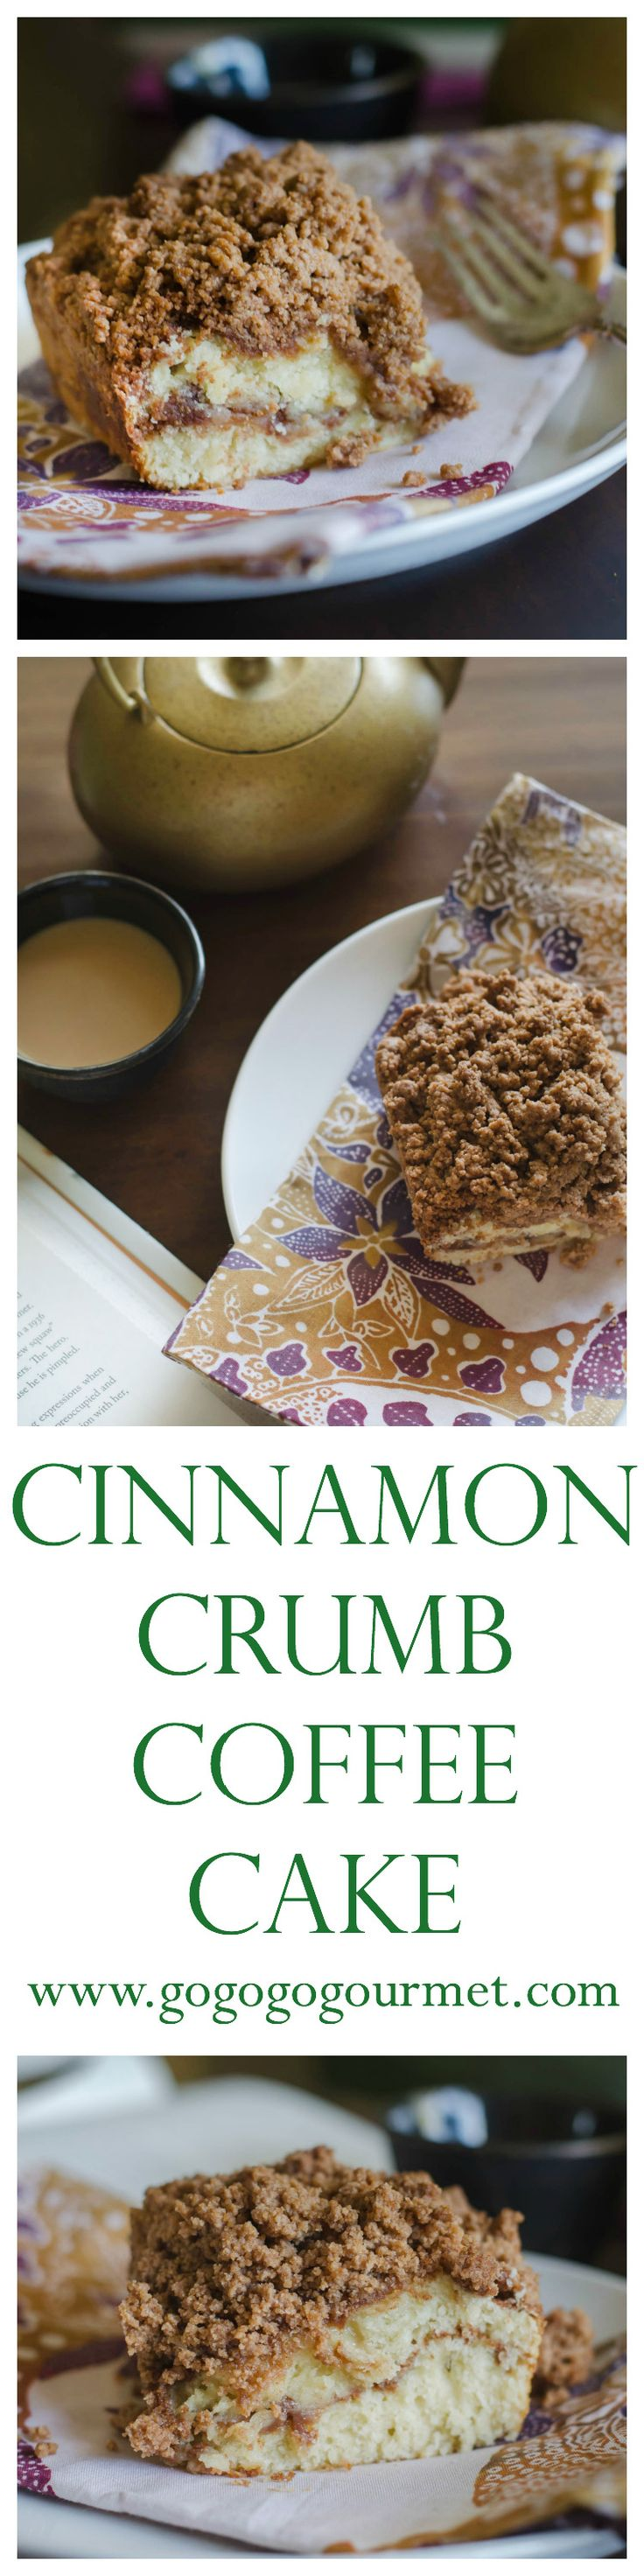 Sour cream coffee cake the frugal chef - Cinnamon Crumb Coffee Cake